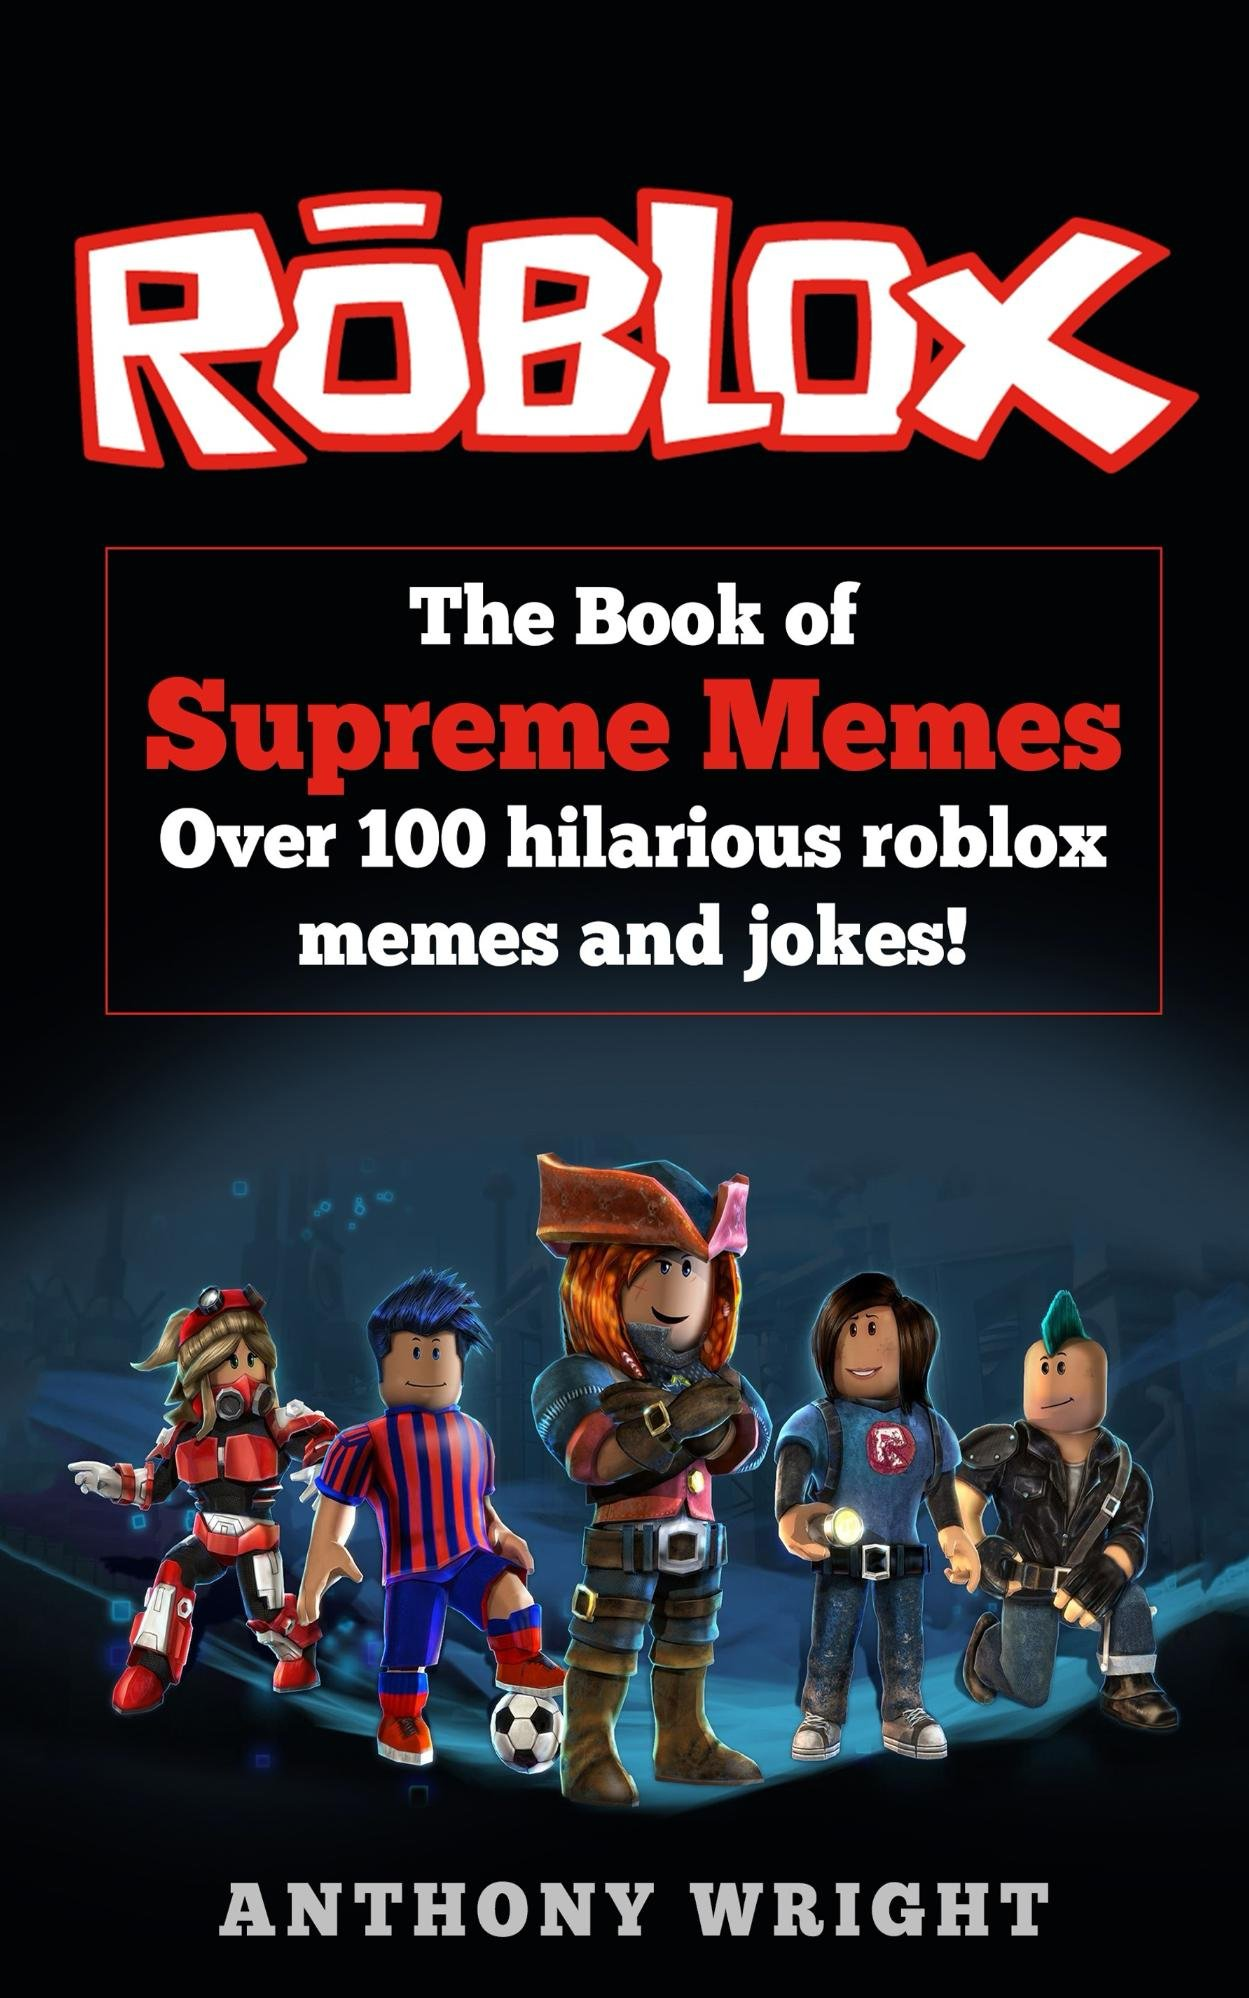 Free Supreme Free Supreme Free Supreme Supreme Roblox Download Book The Book Of Supreme Memes Over 100 Hilarious Roblox Memes And Jokes For Free